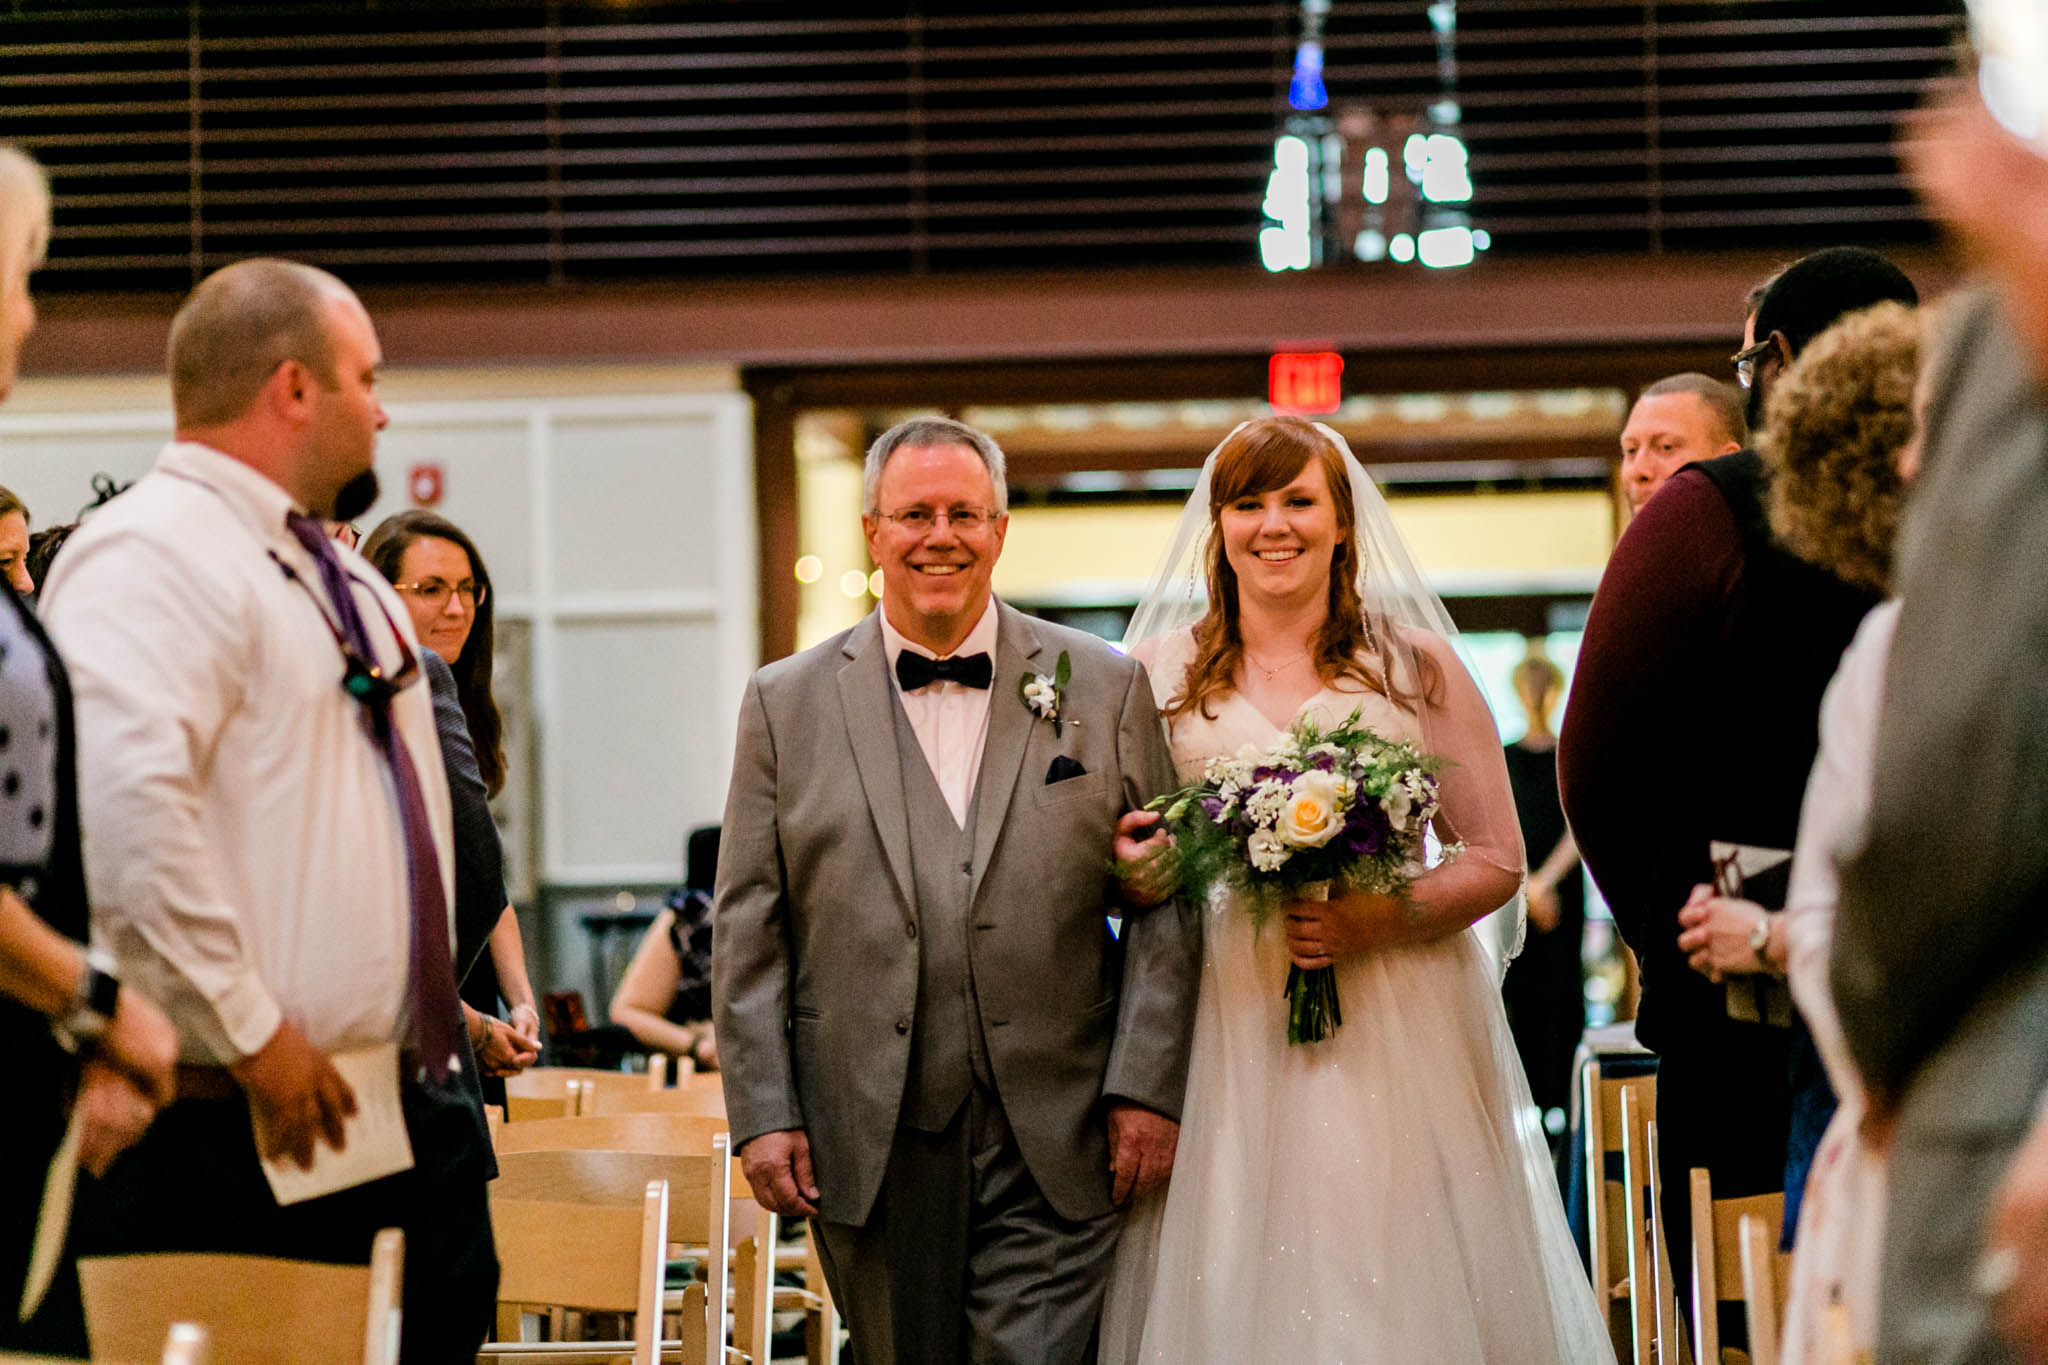 Haw River Ballroom Wedding | Durham Photographer | By G. Lin Photography | Bride with father walking down the aisle